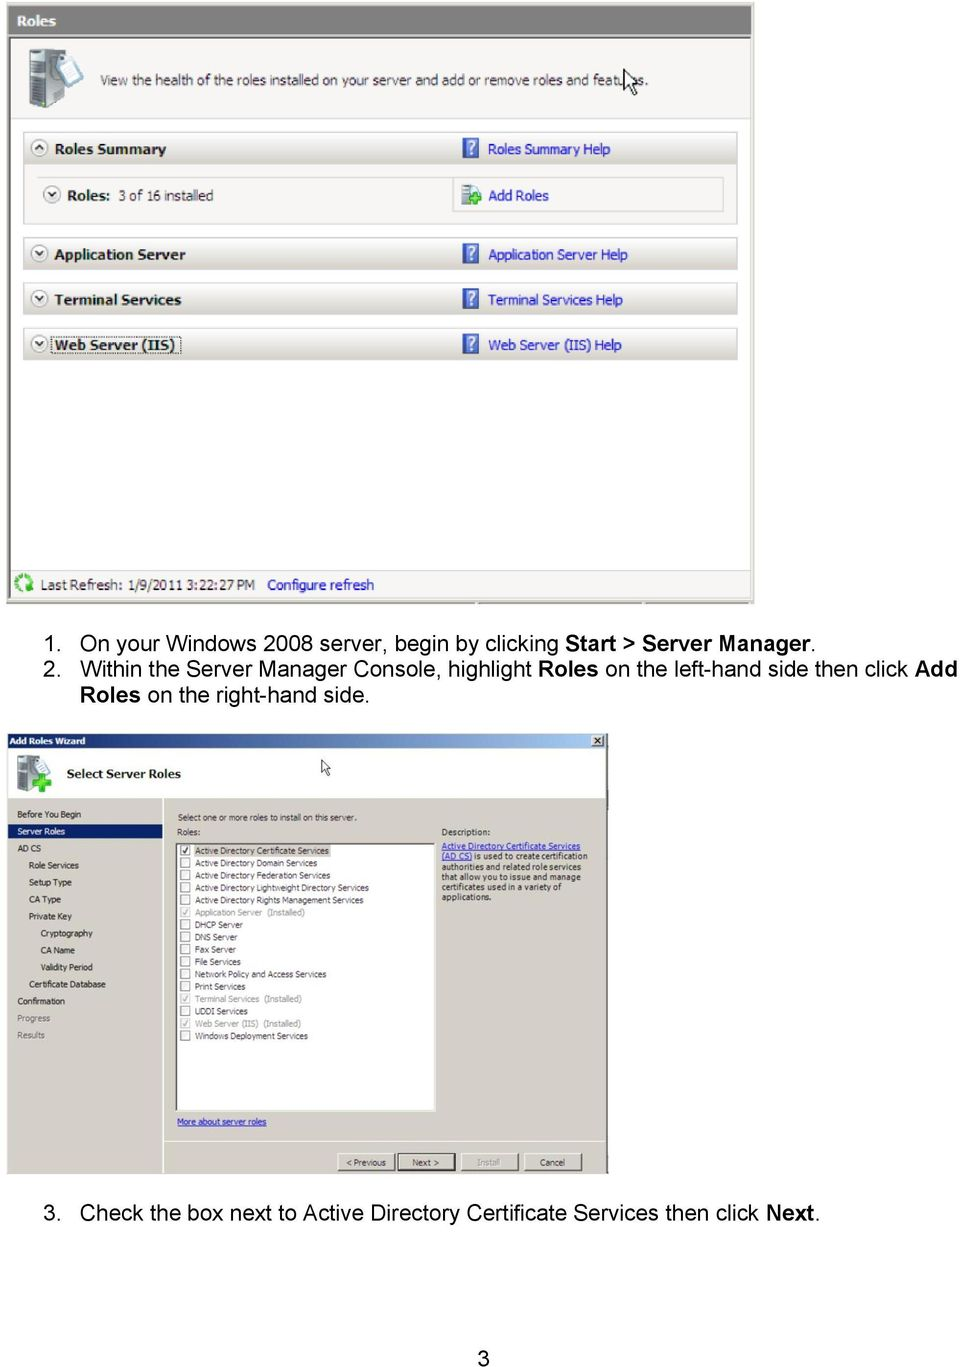 Within the Server Manager Console, highlight Roles on the left-hand